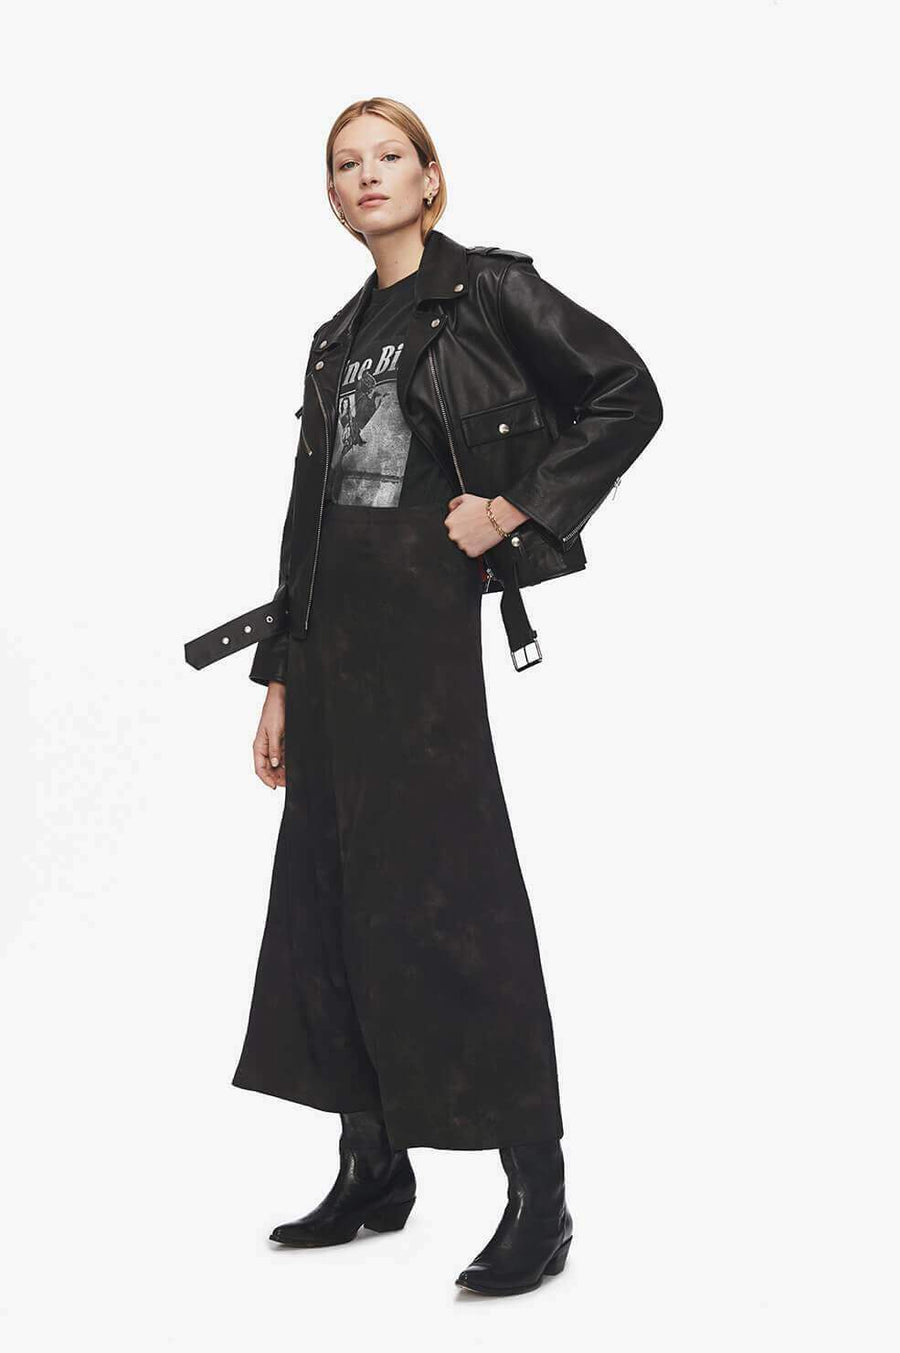 Anine Bing Caroline Silk Skirt in Black Tie Dye from The New Trend